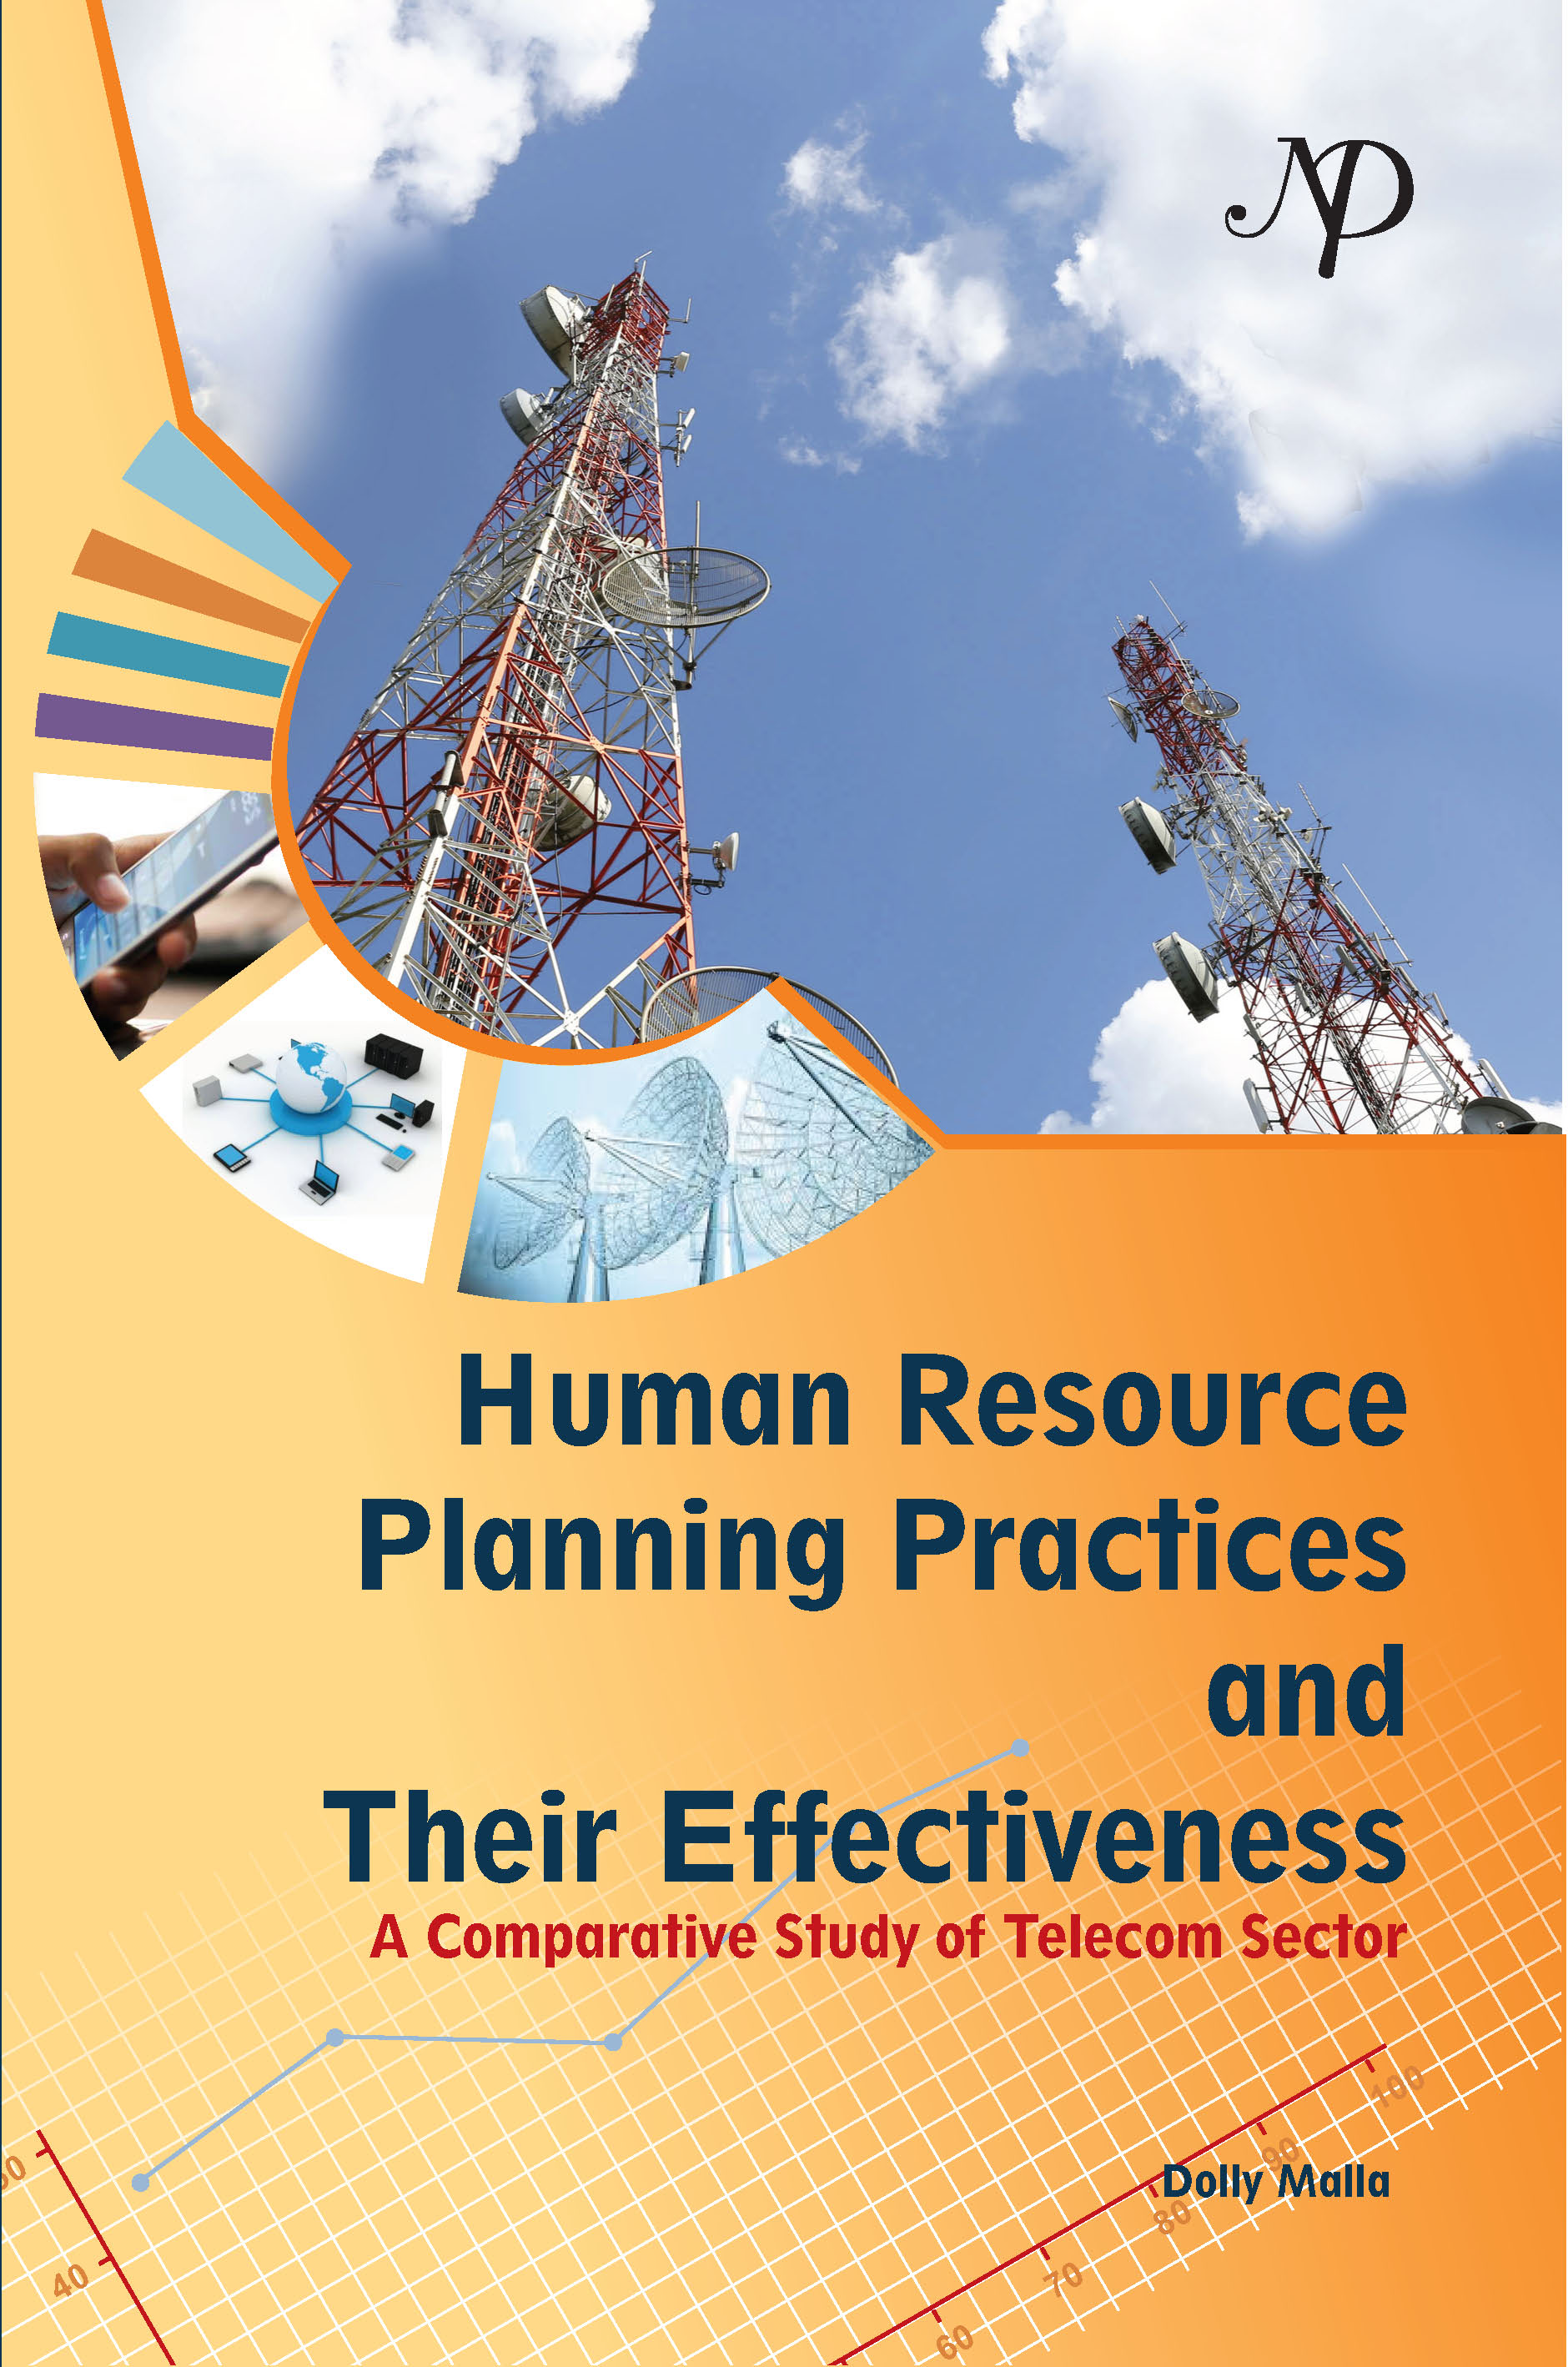 Human Resource Planning Practices and Their Effectiveness A Comparative Study of Telecom Sector